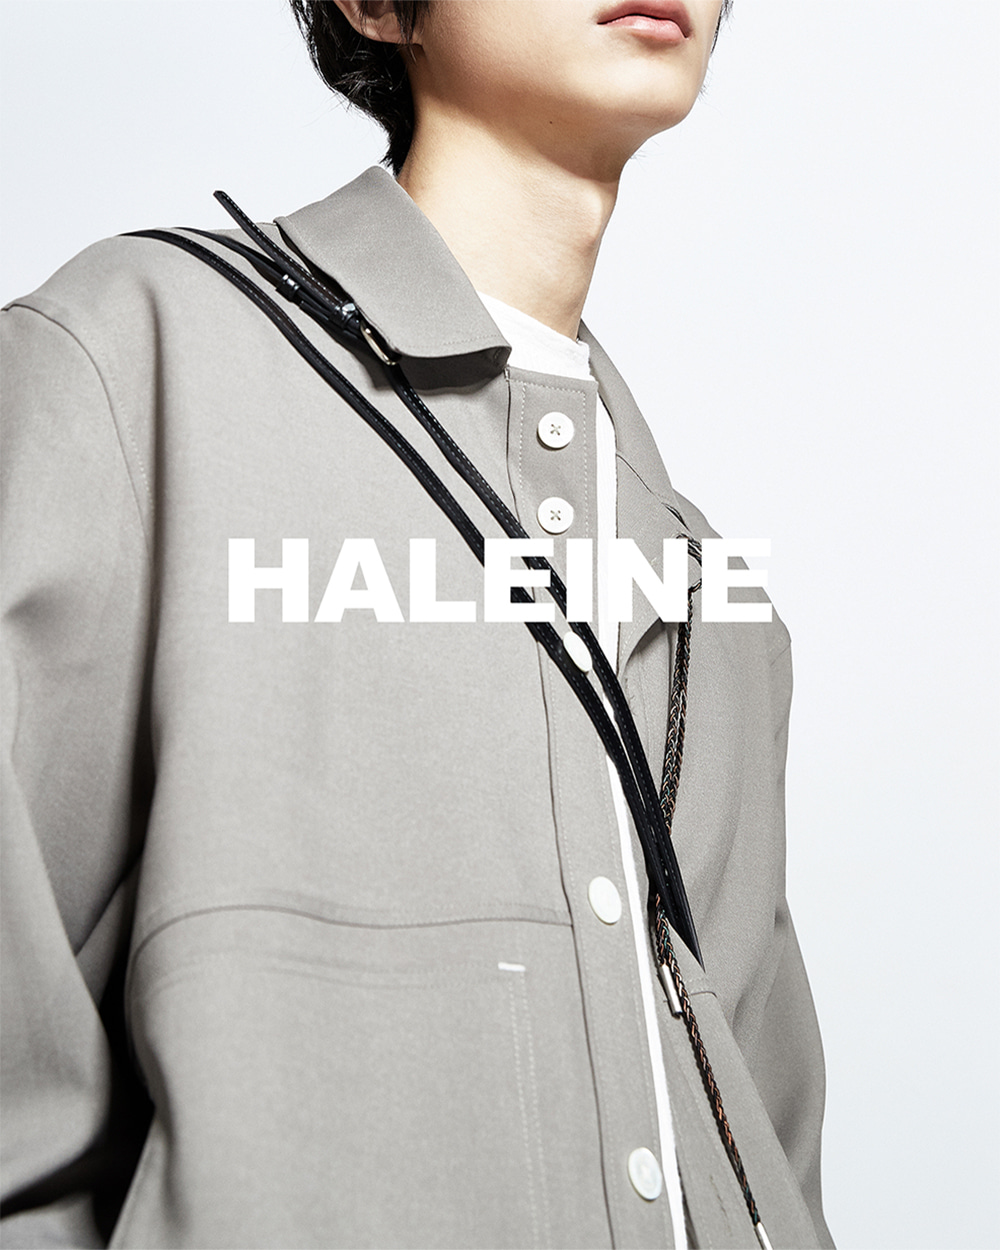 HALEINE알렌느 LIGHTKAIKI 3D detail triacetate shirts jacket(NJ022)